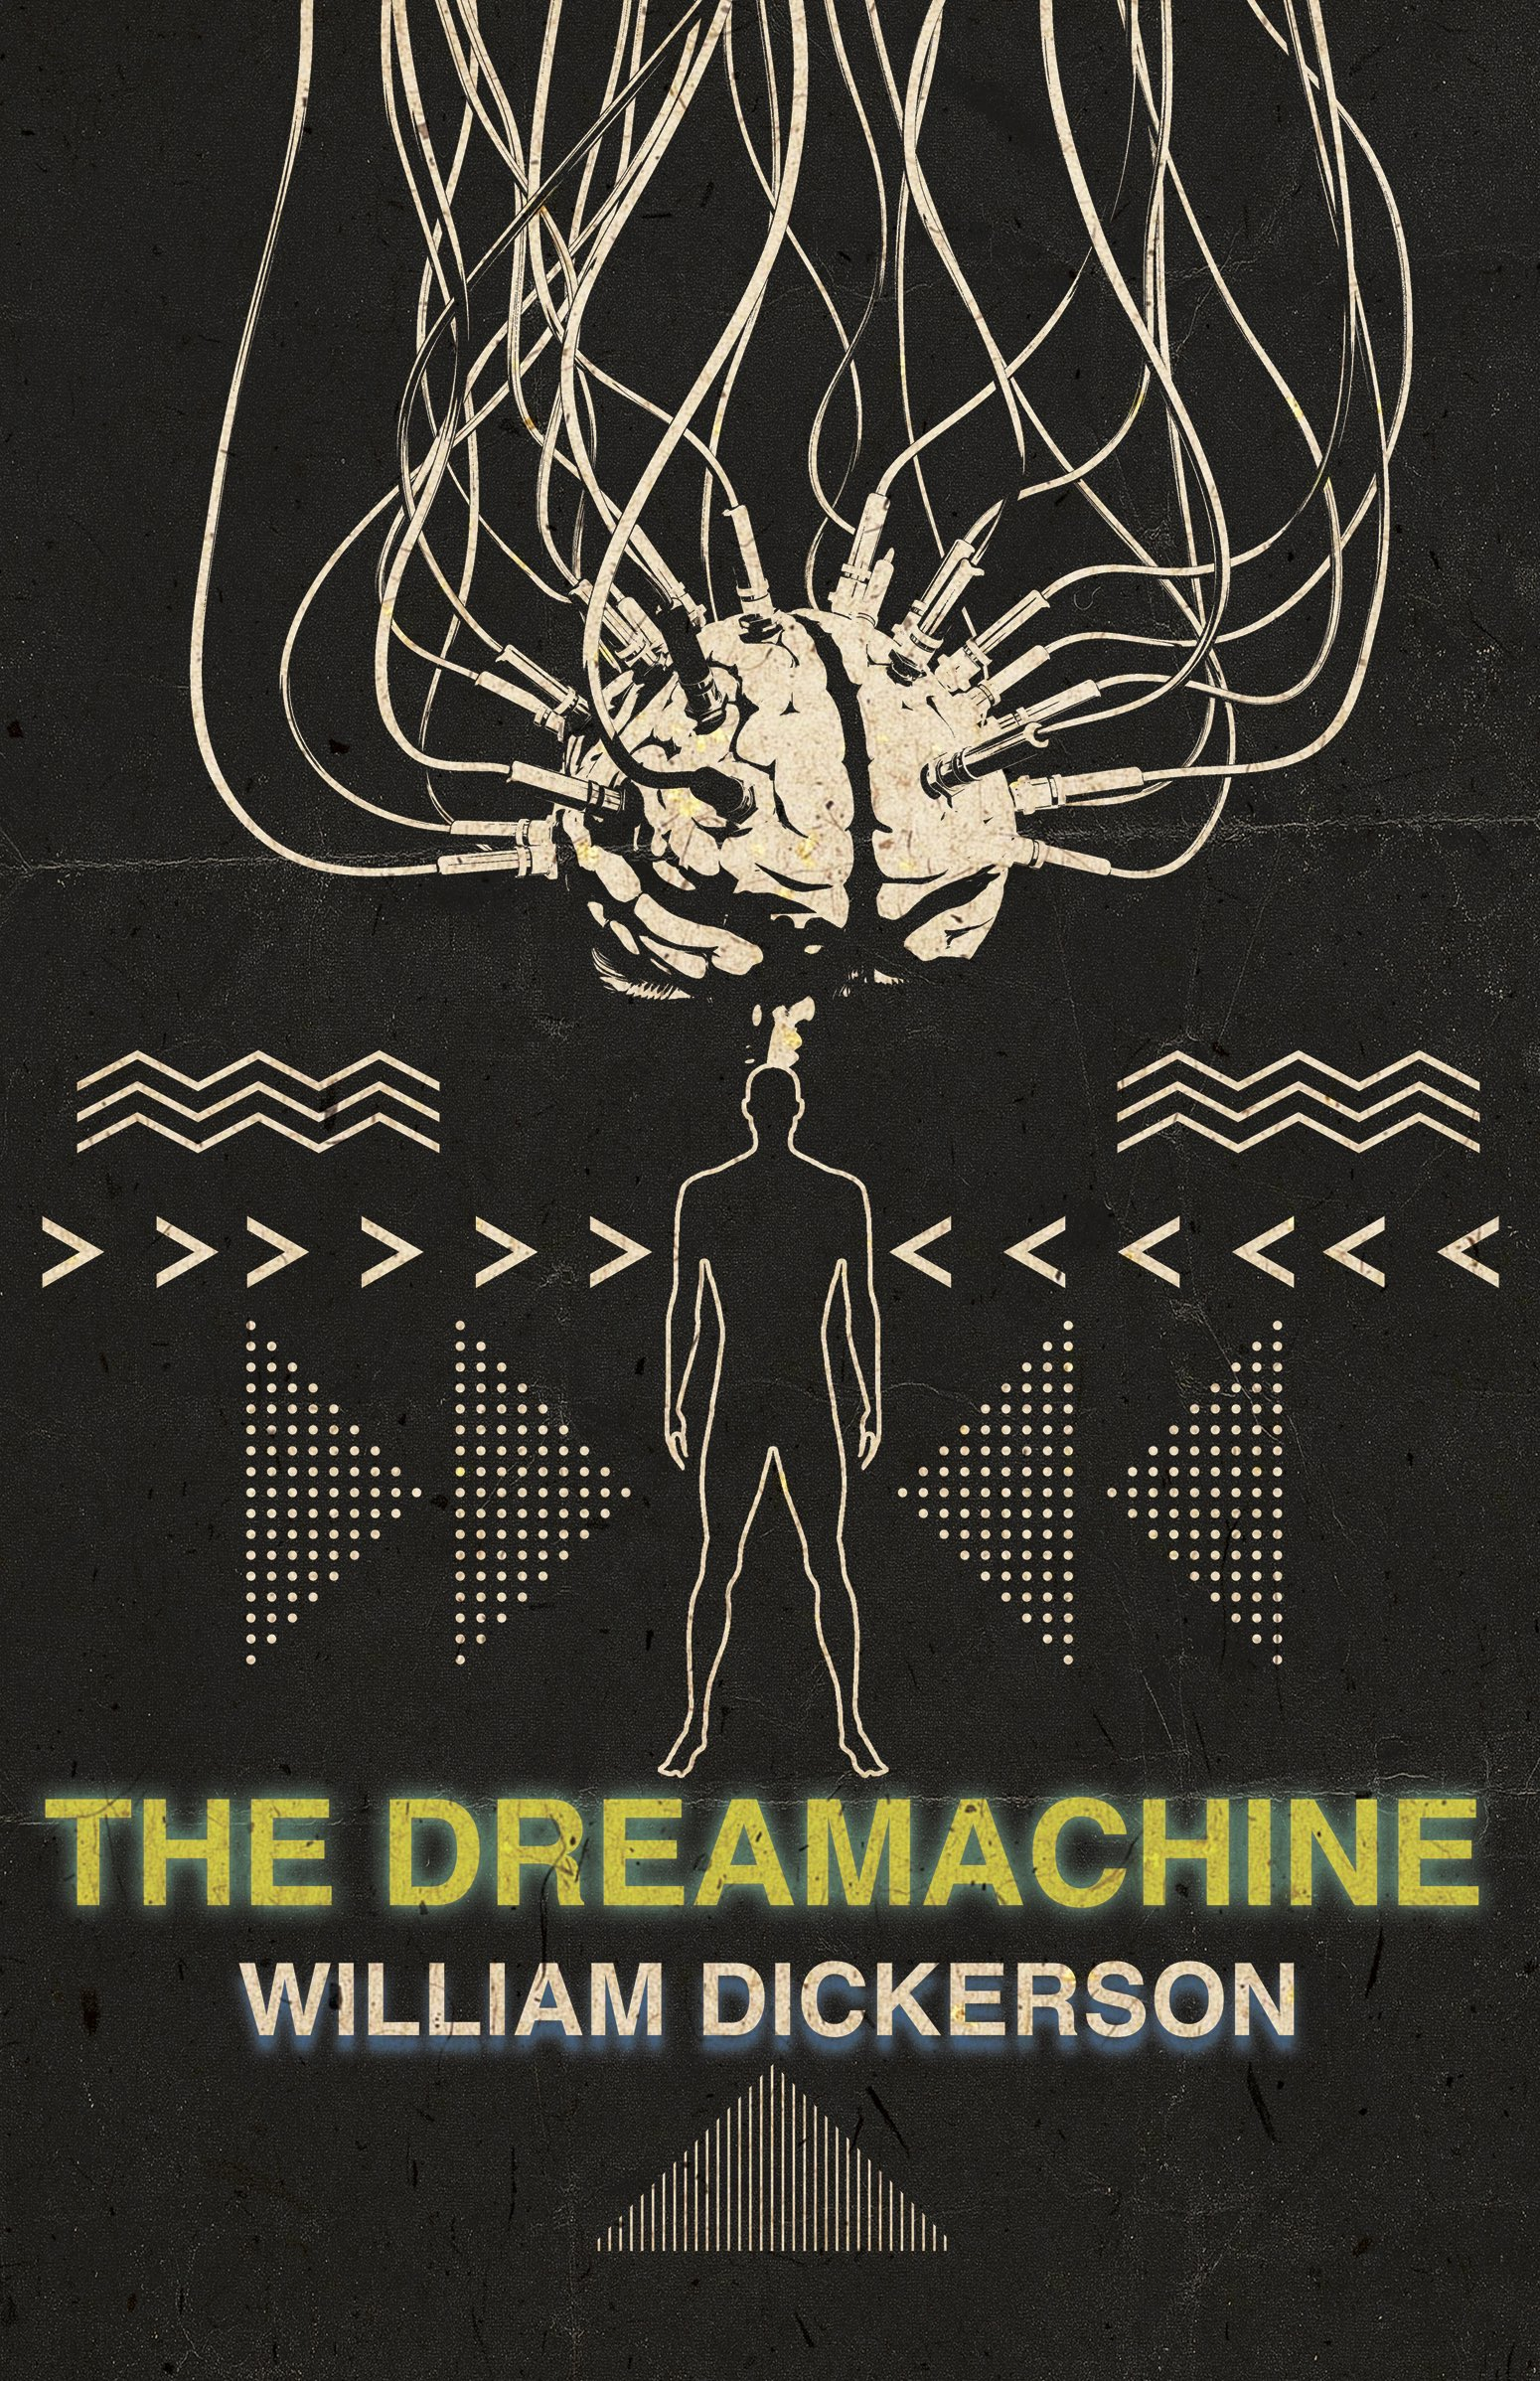 The Dreamachine